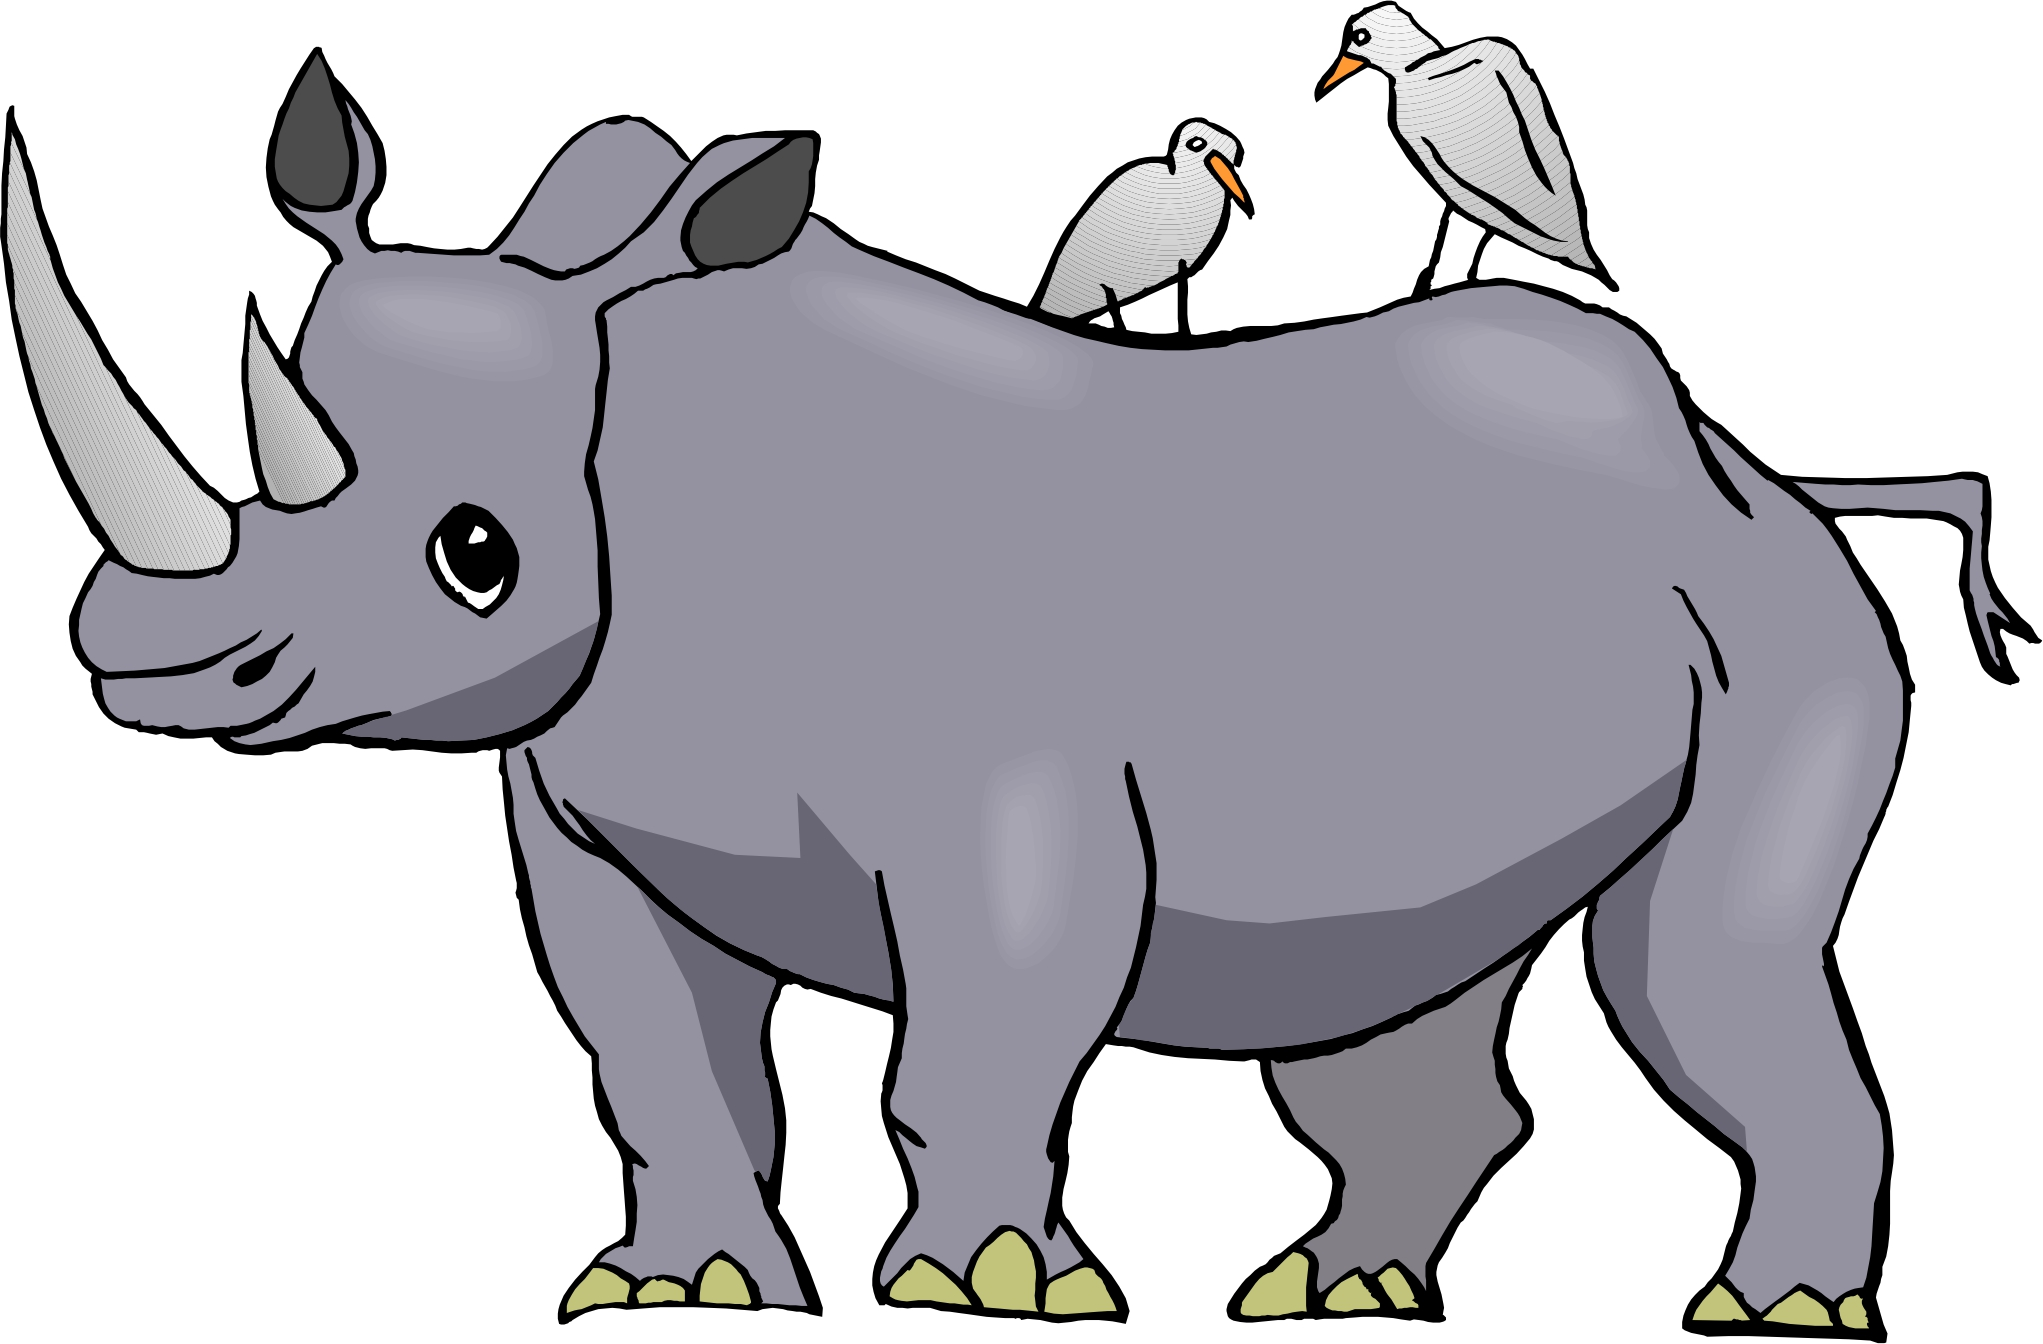 rhinoceros 20clipart clipart panda free clipart images rhino clipart black and white rhino clipart black and white